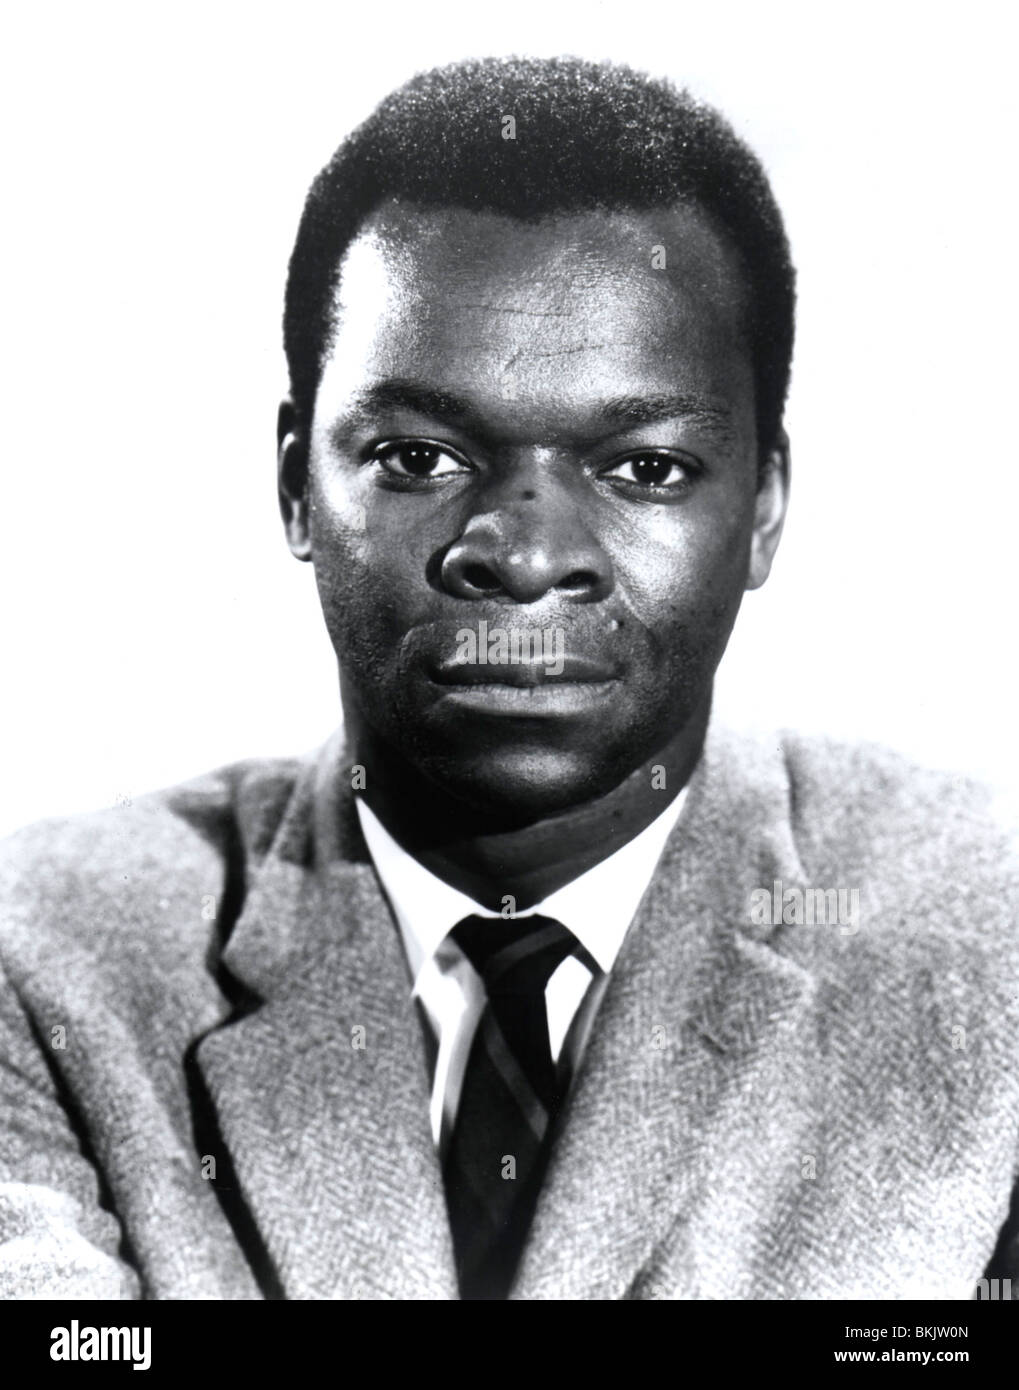 THE PAWNBROKER (1964) BROCK PETERS TPWB 005 P - Stock Image